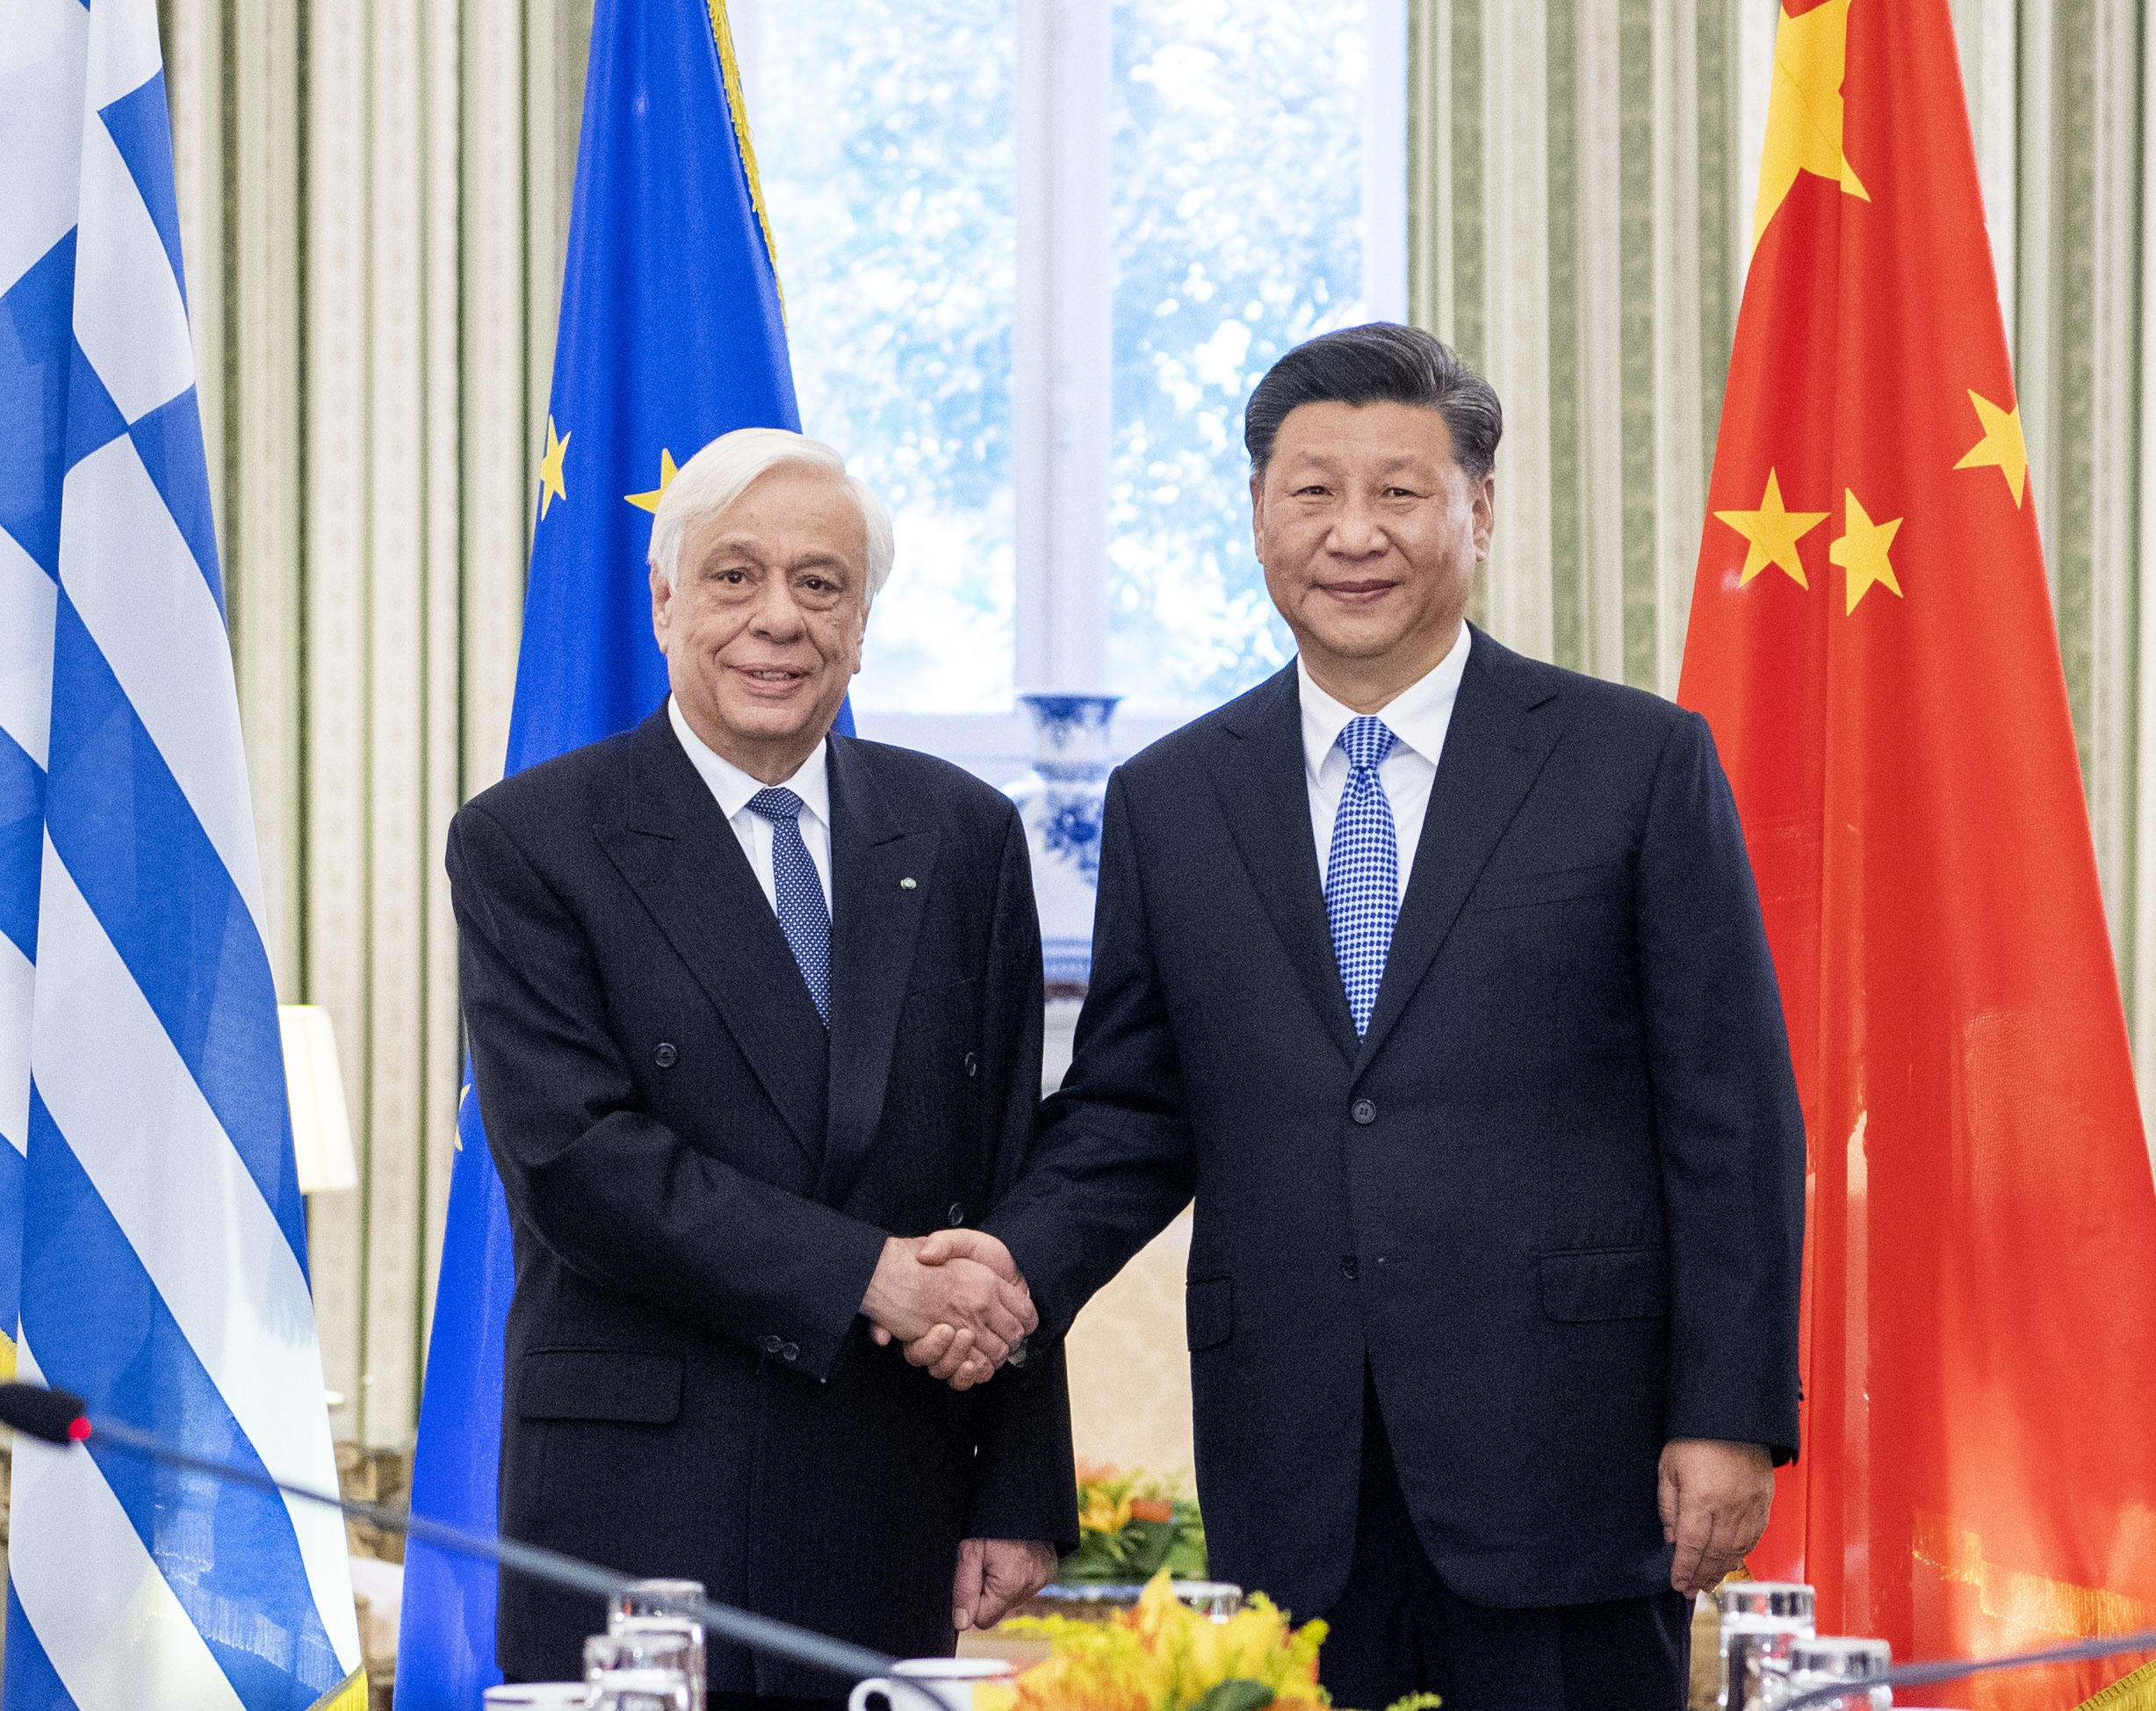 Xi holds talks with Greek President in Athens, Greece